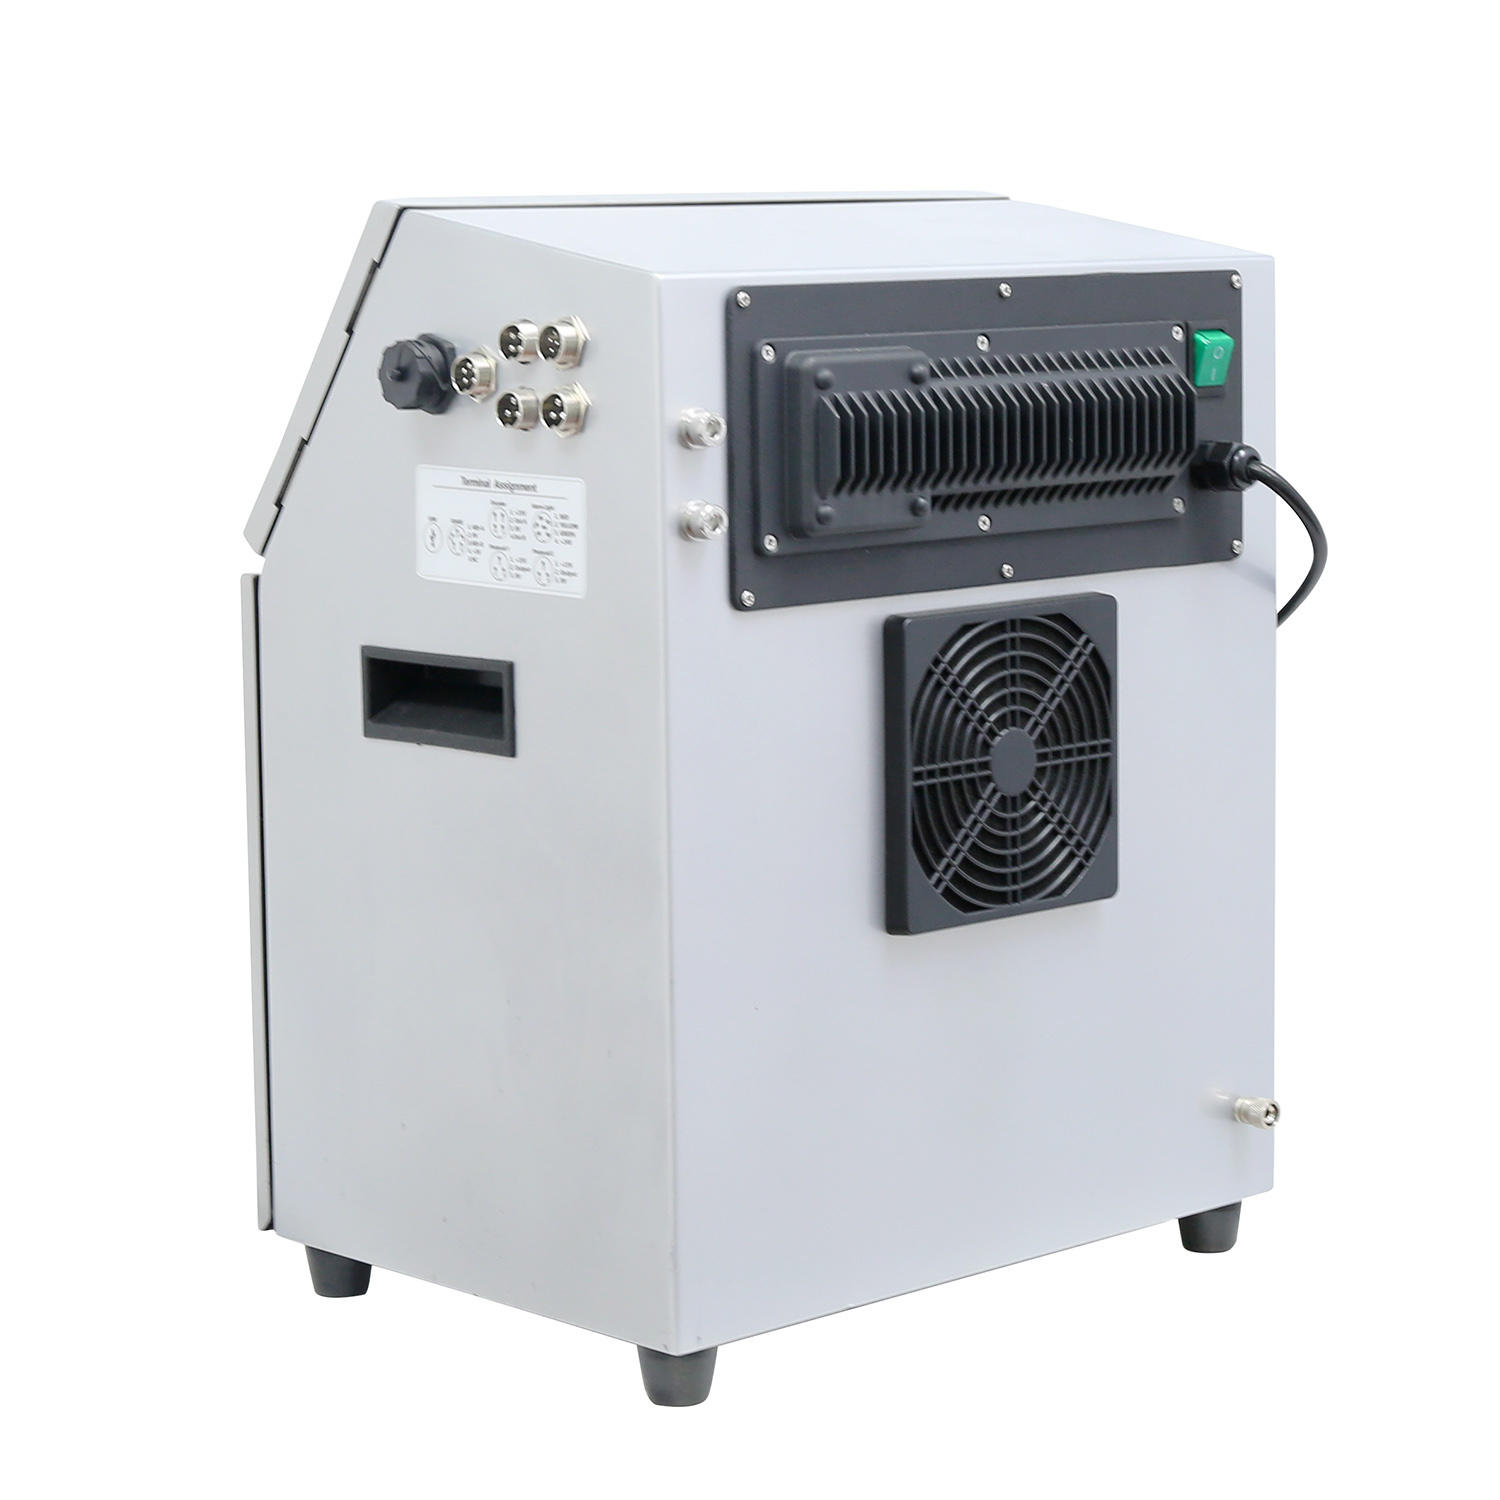 Leadtech Lt800 Numbering Printing Machines Small Inkjet Printer